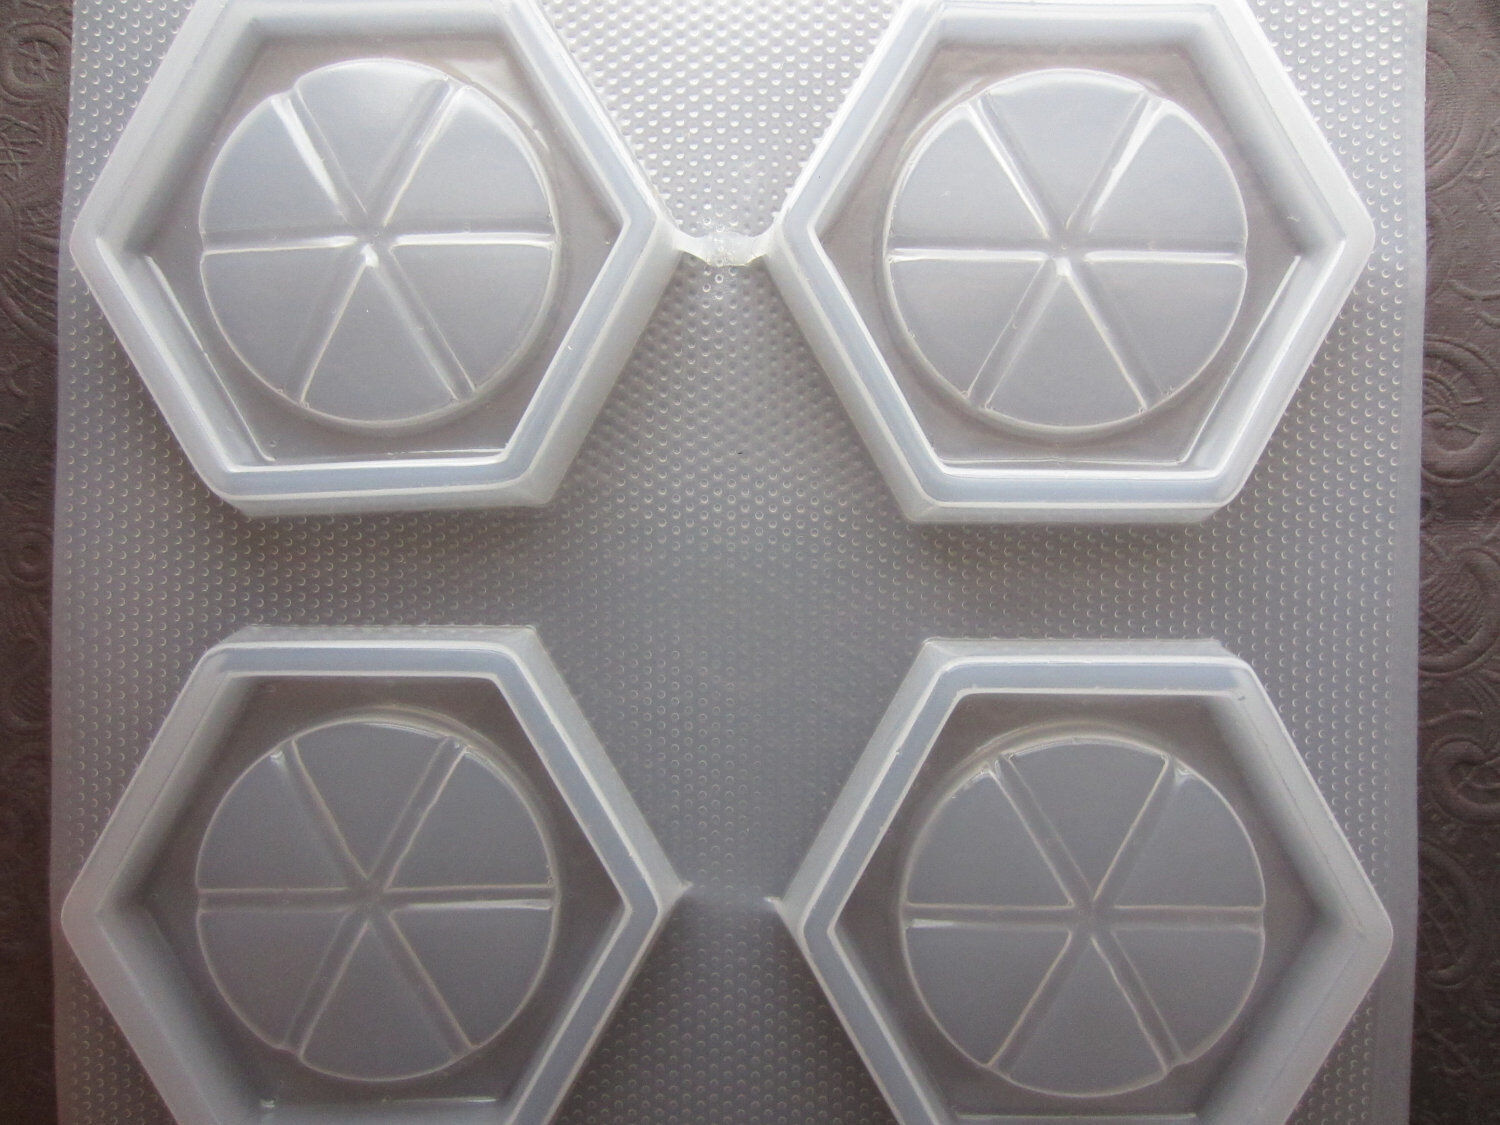 Resin Mold Coaster Set 3.75 95mm Grided Hexagon 4 Count Drink Coasters Molds